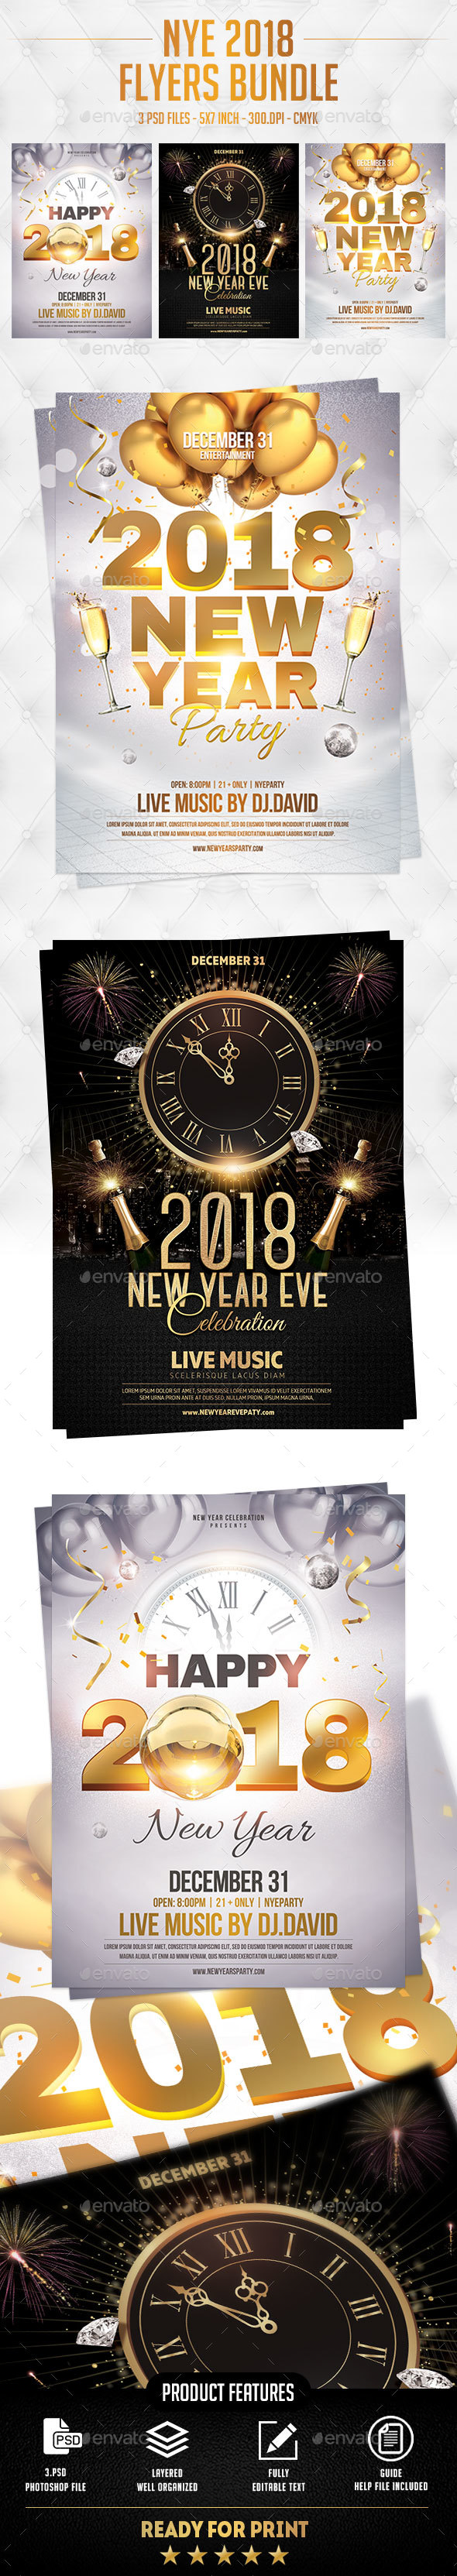 GraphicRiver NYE 2018 Flyers Bundle 21139989